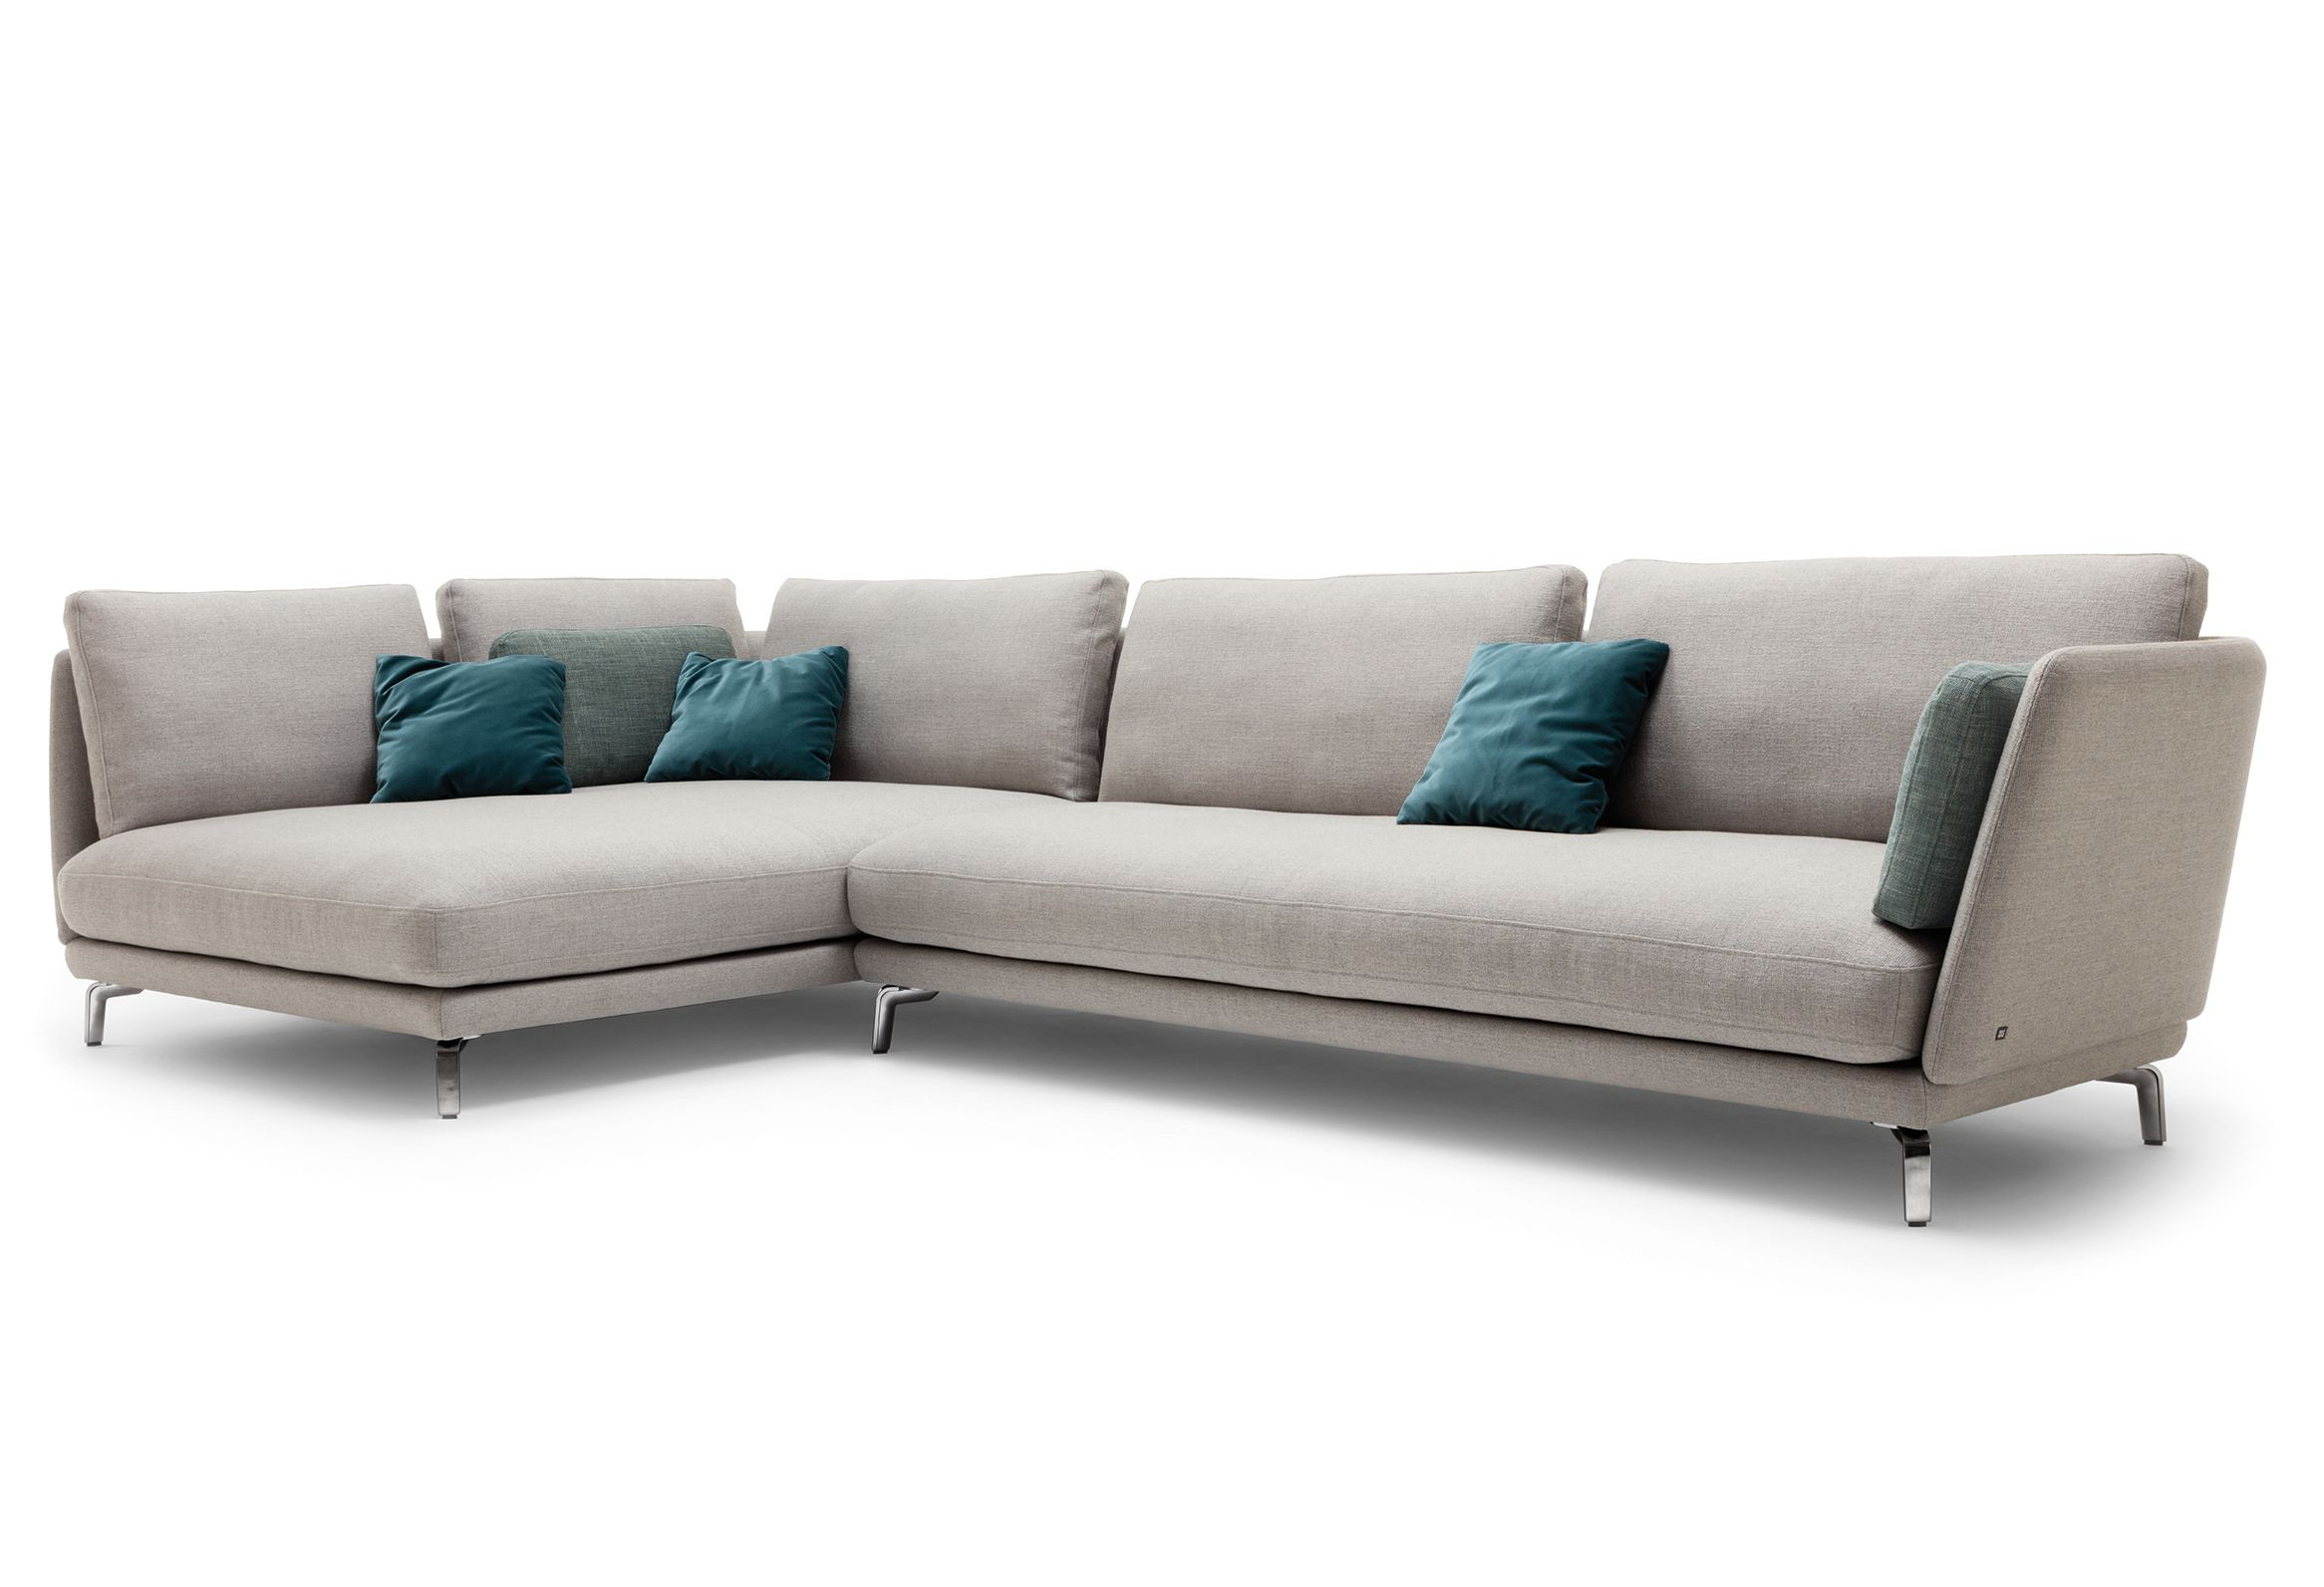 Soft Shaped Sofa Collection Rolf Benz Rb525 Rondo Rolfbenz